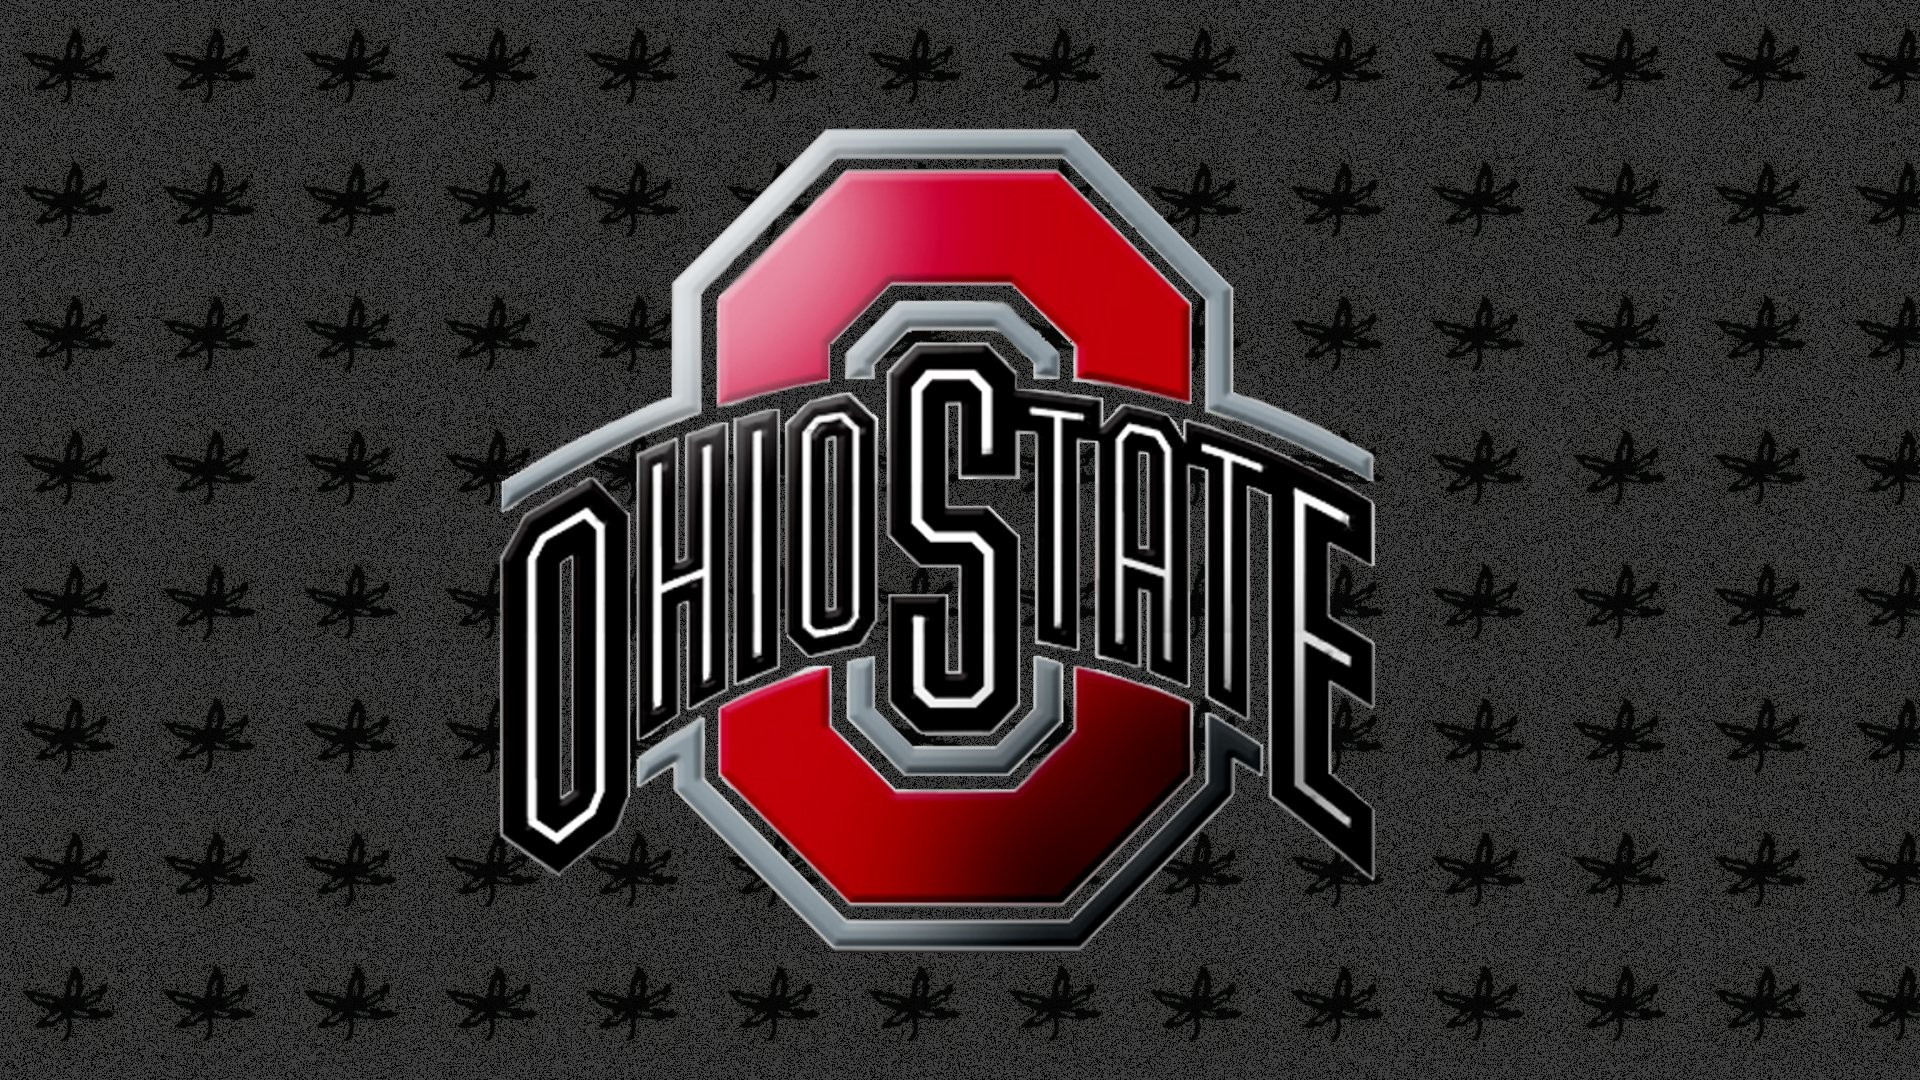 1920x1080 Ohio State Football images OSU Desktop Wallpaper 55 HD wallpaper and .